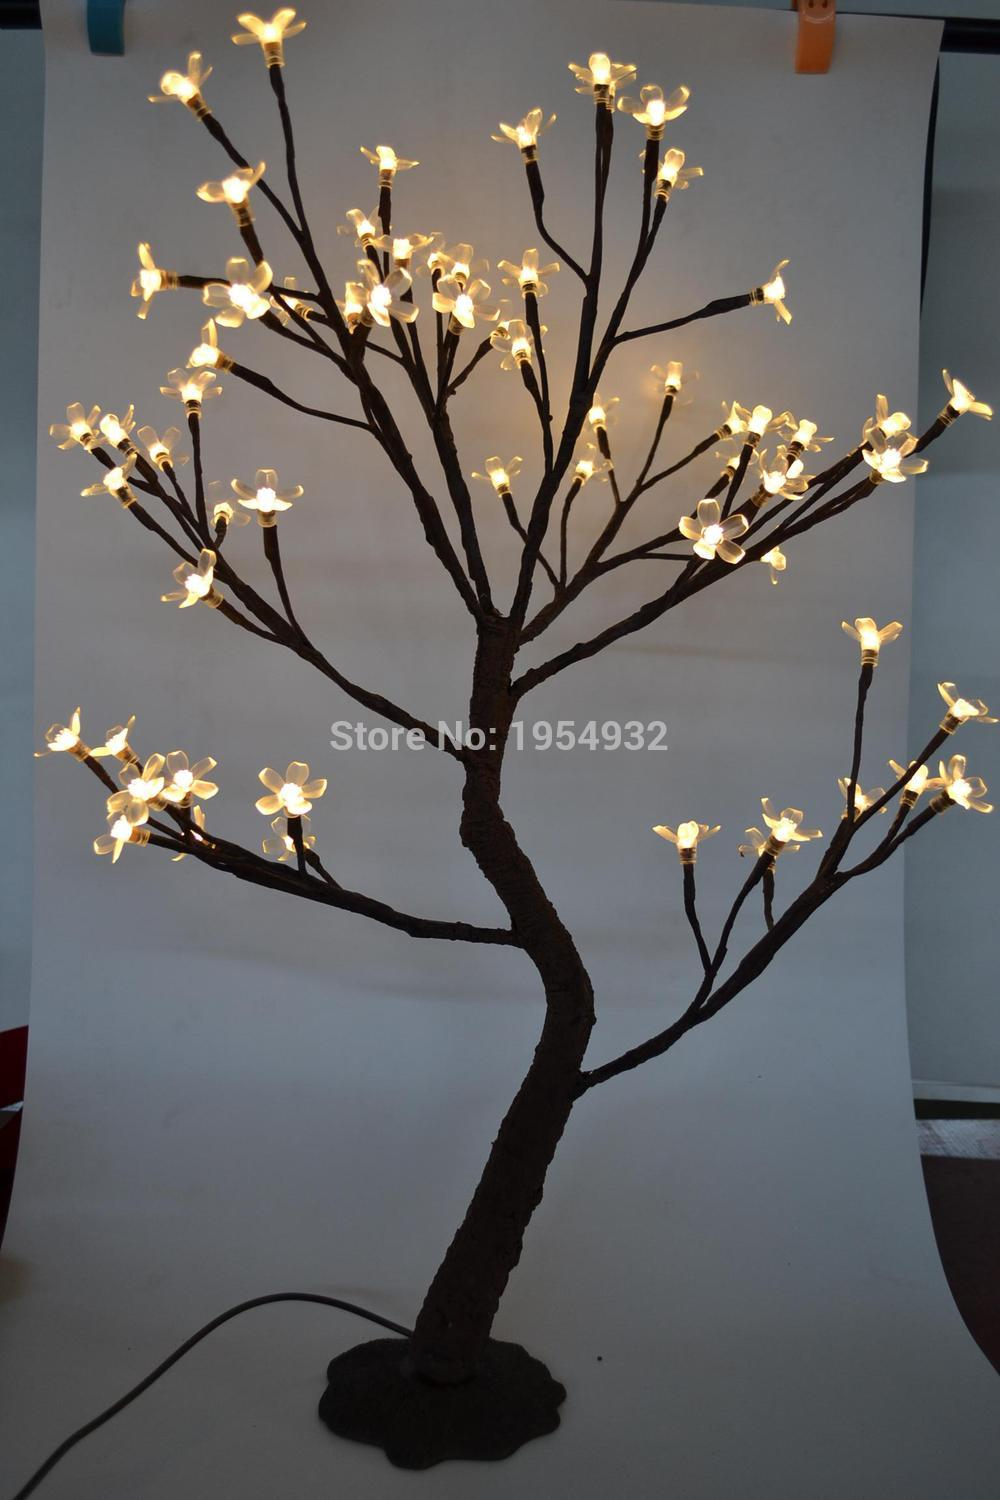 Us 39 99 Indoor Outdoor 64 Led Cherry Blossom Tree Light In 70cm Height With Artifical Nature Trunk Treatment Resin Base 3m Lead Wire